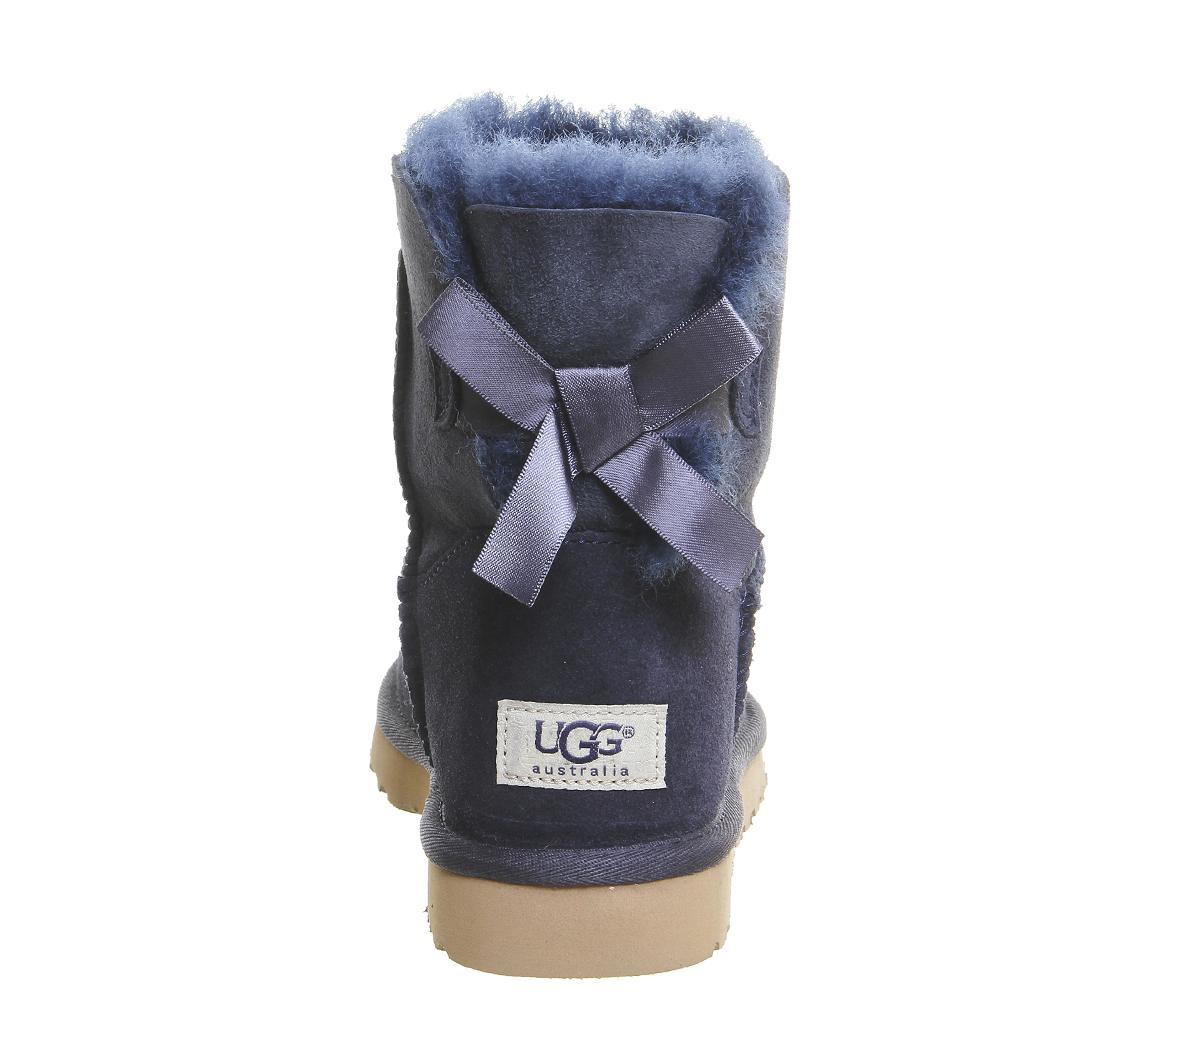 ed15ecf6125 Ugg Slippers Half Sizes - cheap watches mgc-gas.com